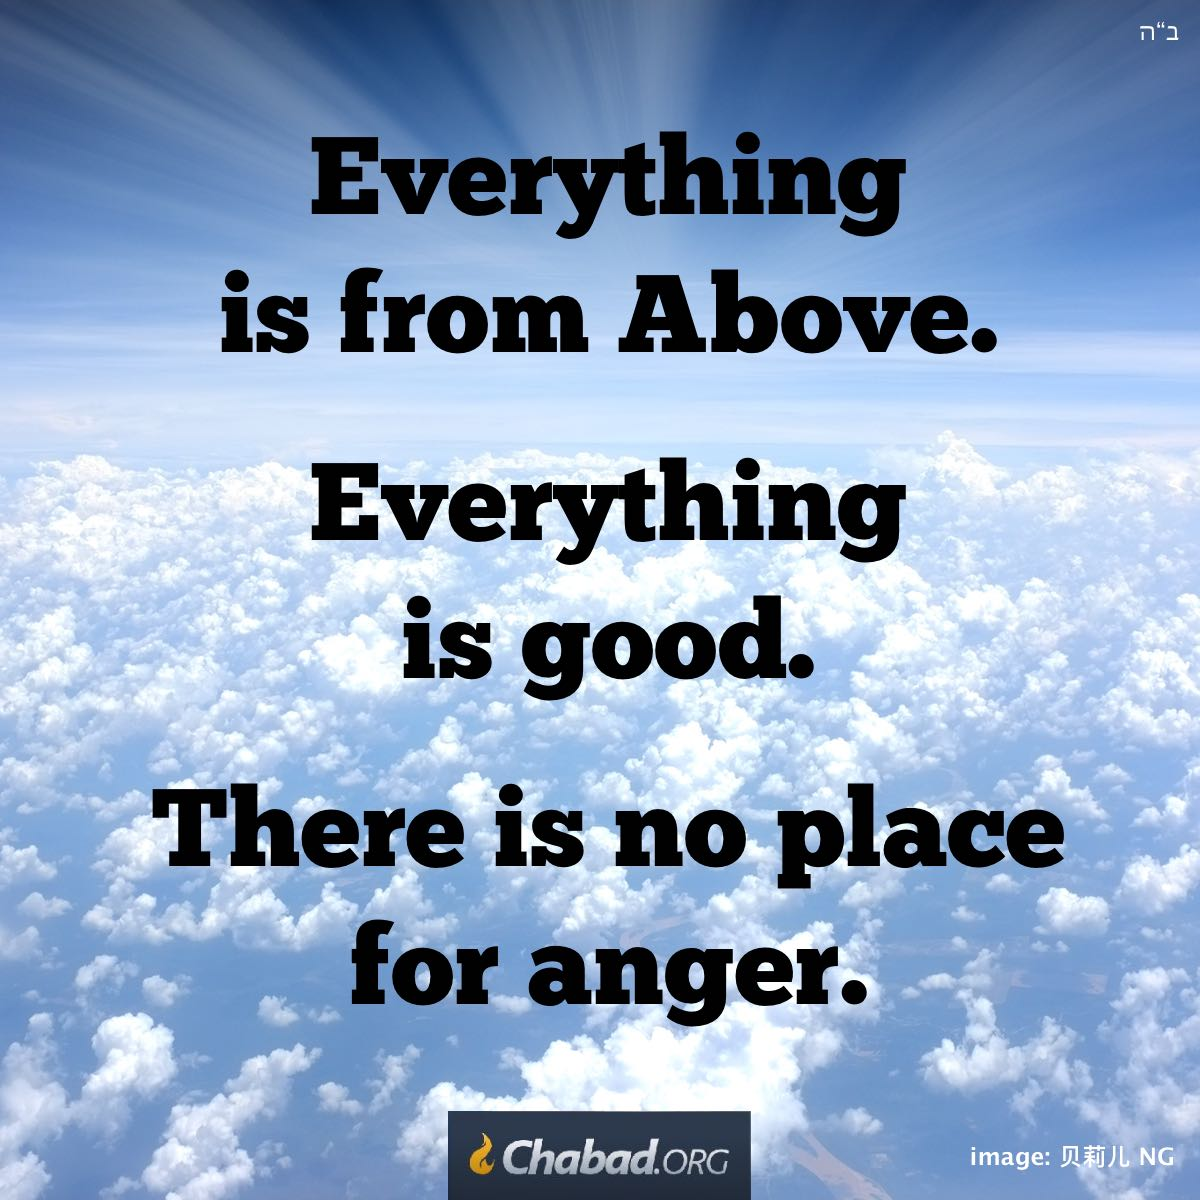 Advice On Anger Daily Dose Of Wisdom